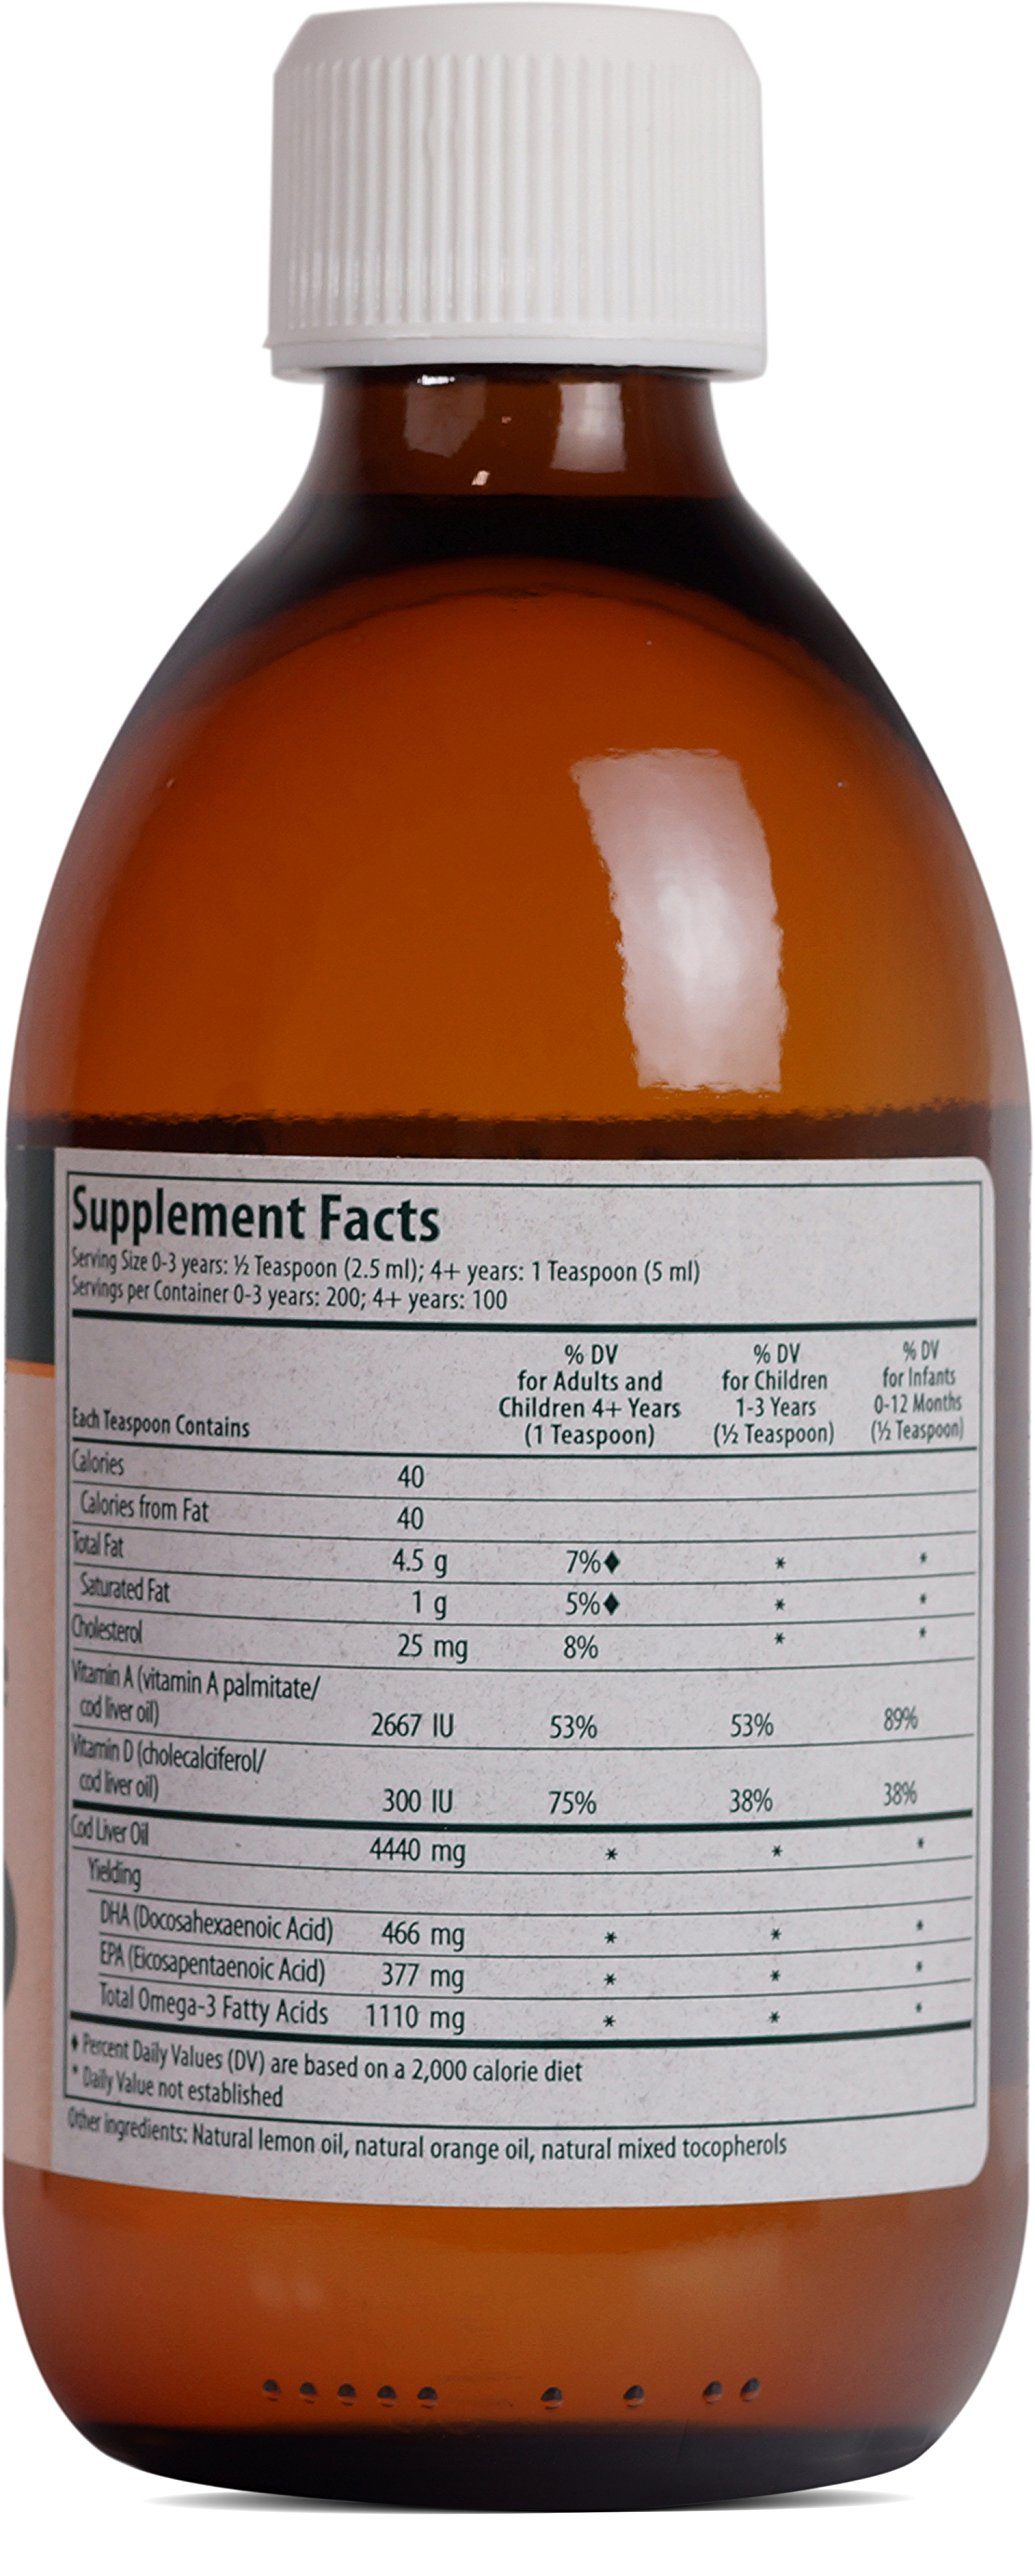 Genestra Brands - Cod Liver Oil Forte - Vitamin + Essential Fatty Acid Supplement - 16.9 fl oz (500 ml) by Genestra Brands (Image #2)